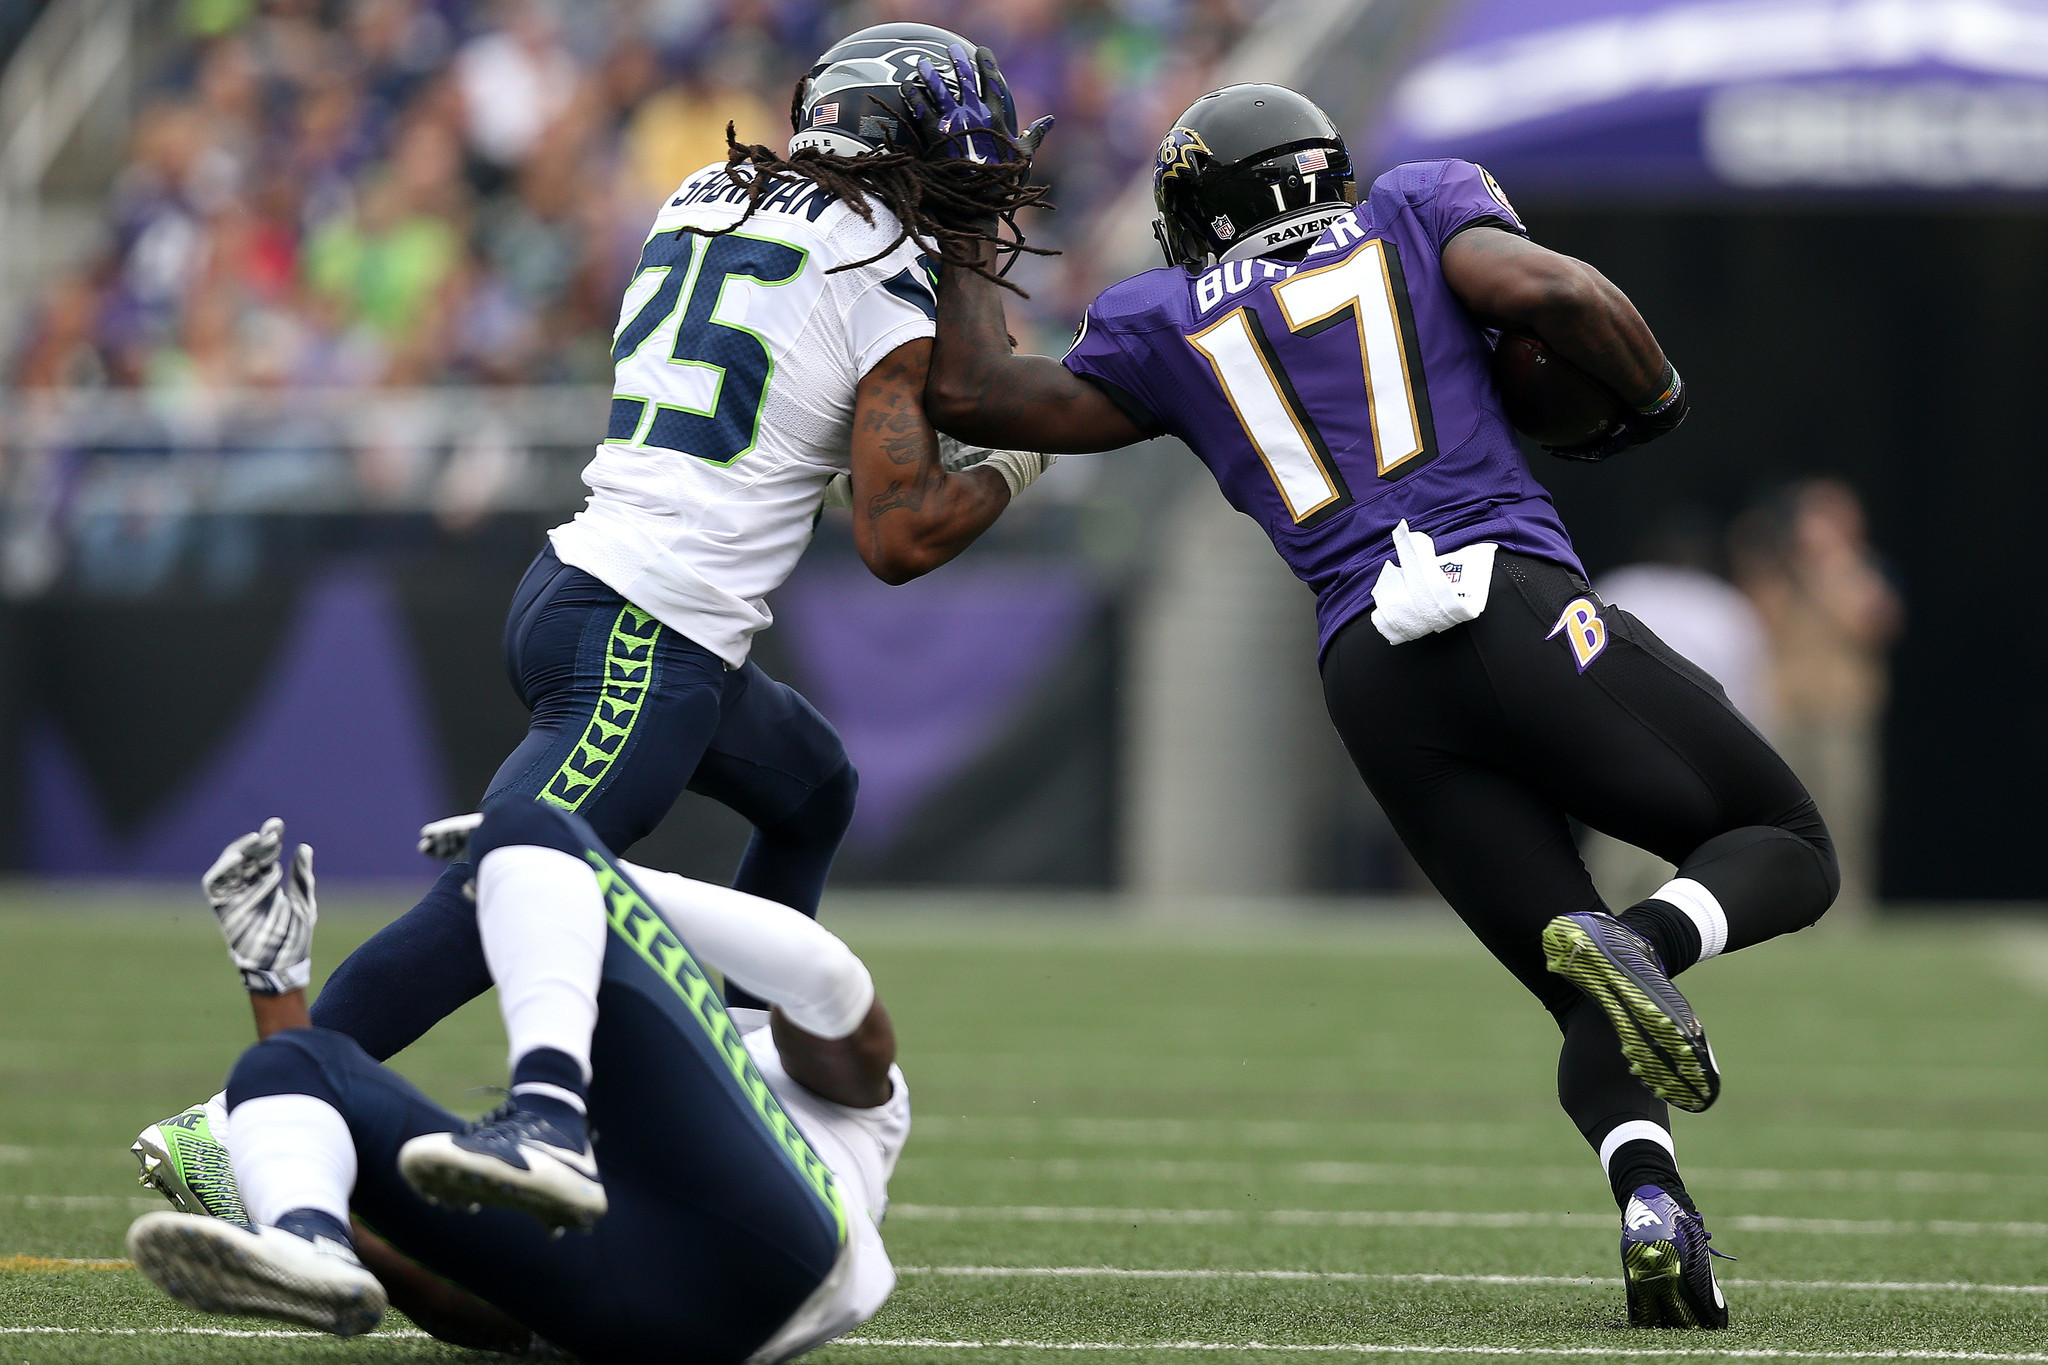 bal-ravens-wide-receivers-jeremy-butler-daniel-brown-step-up-against-top-seahawks-secondary-20151214